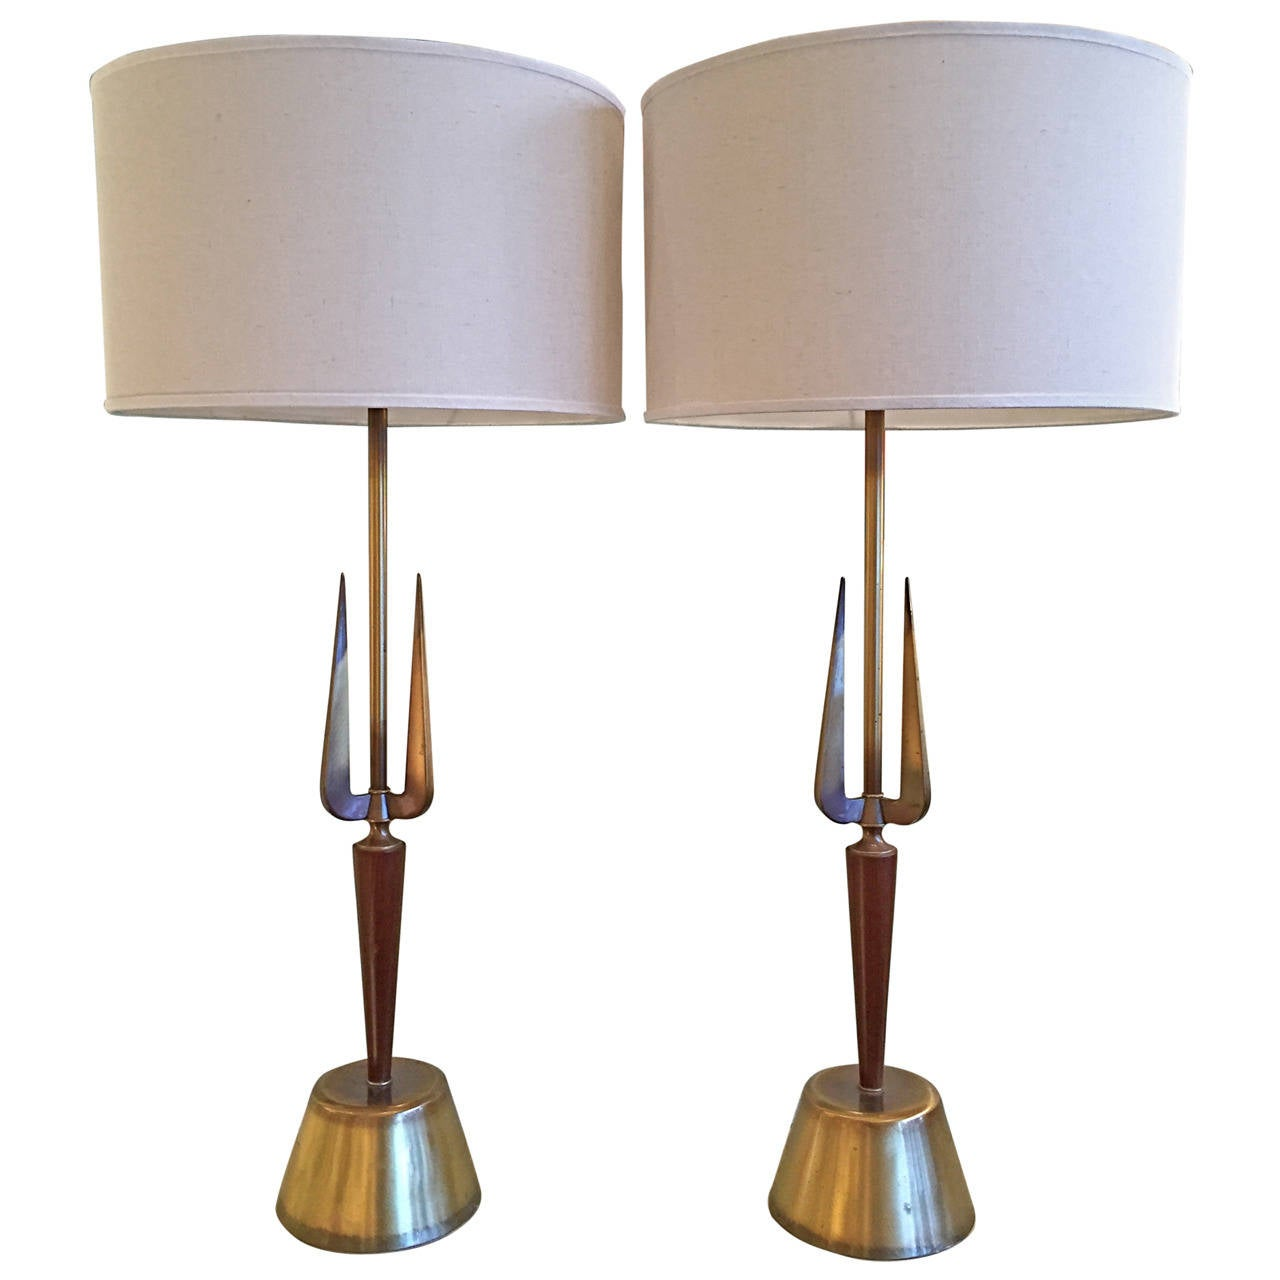 Pair of Atomic Table Lamps by Rembrandt